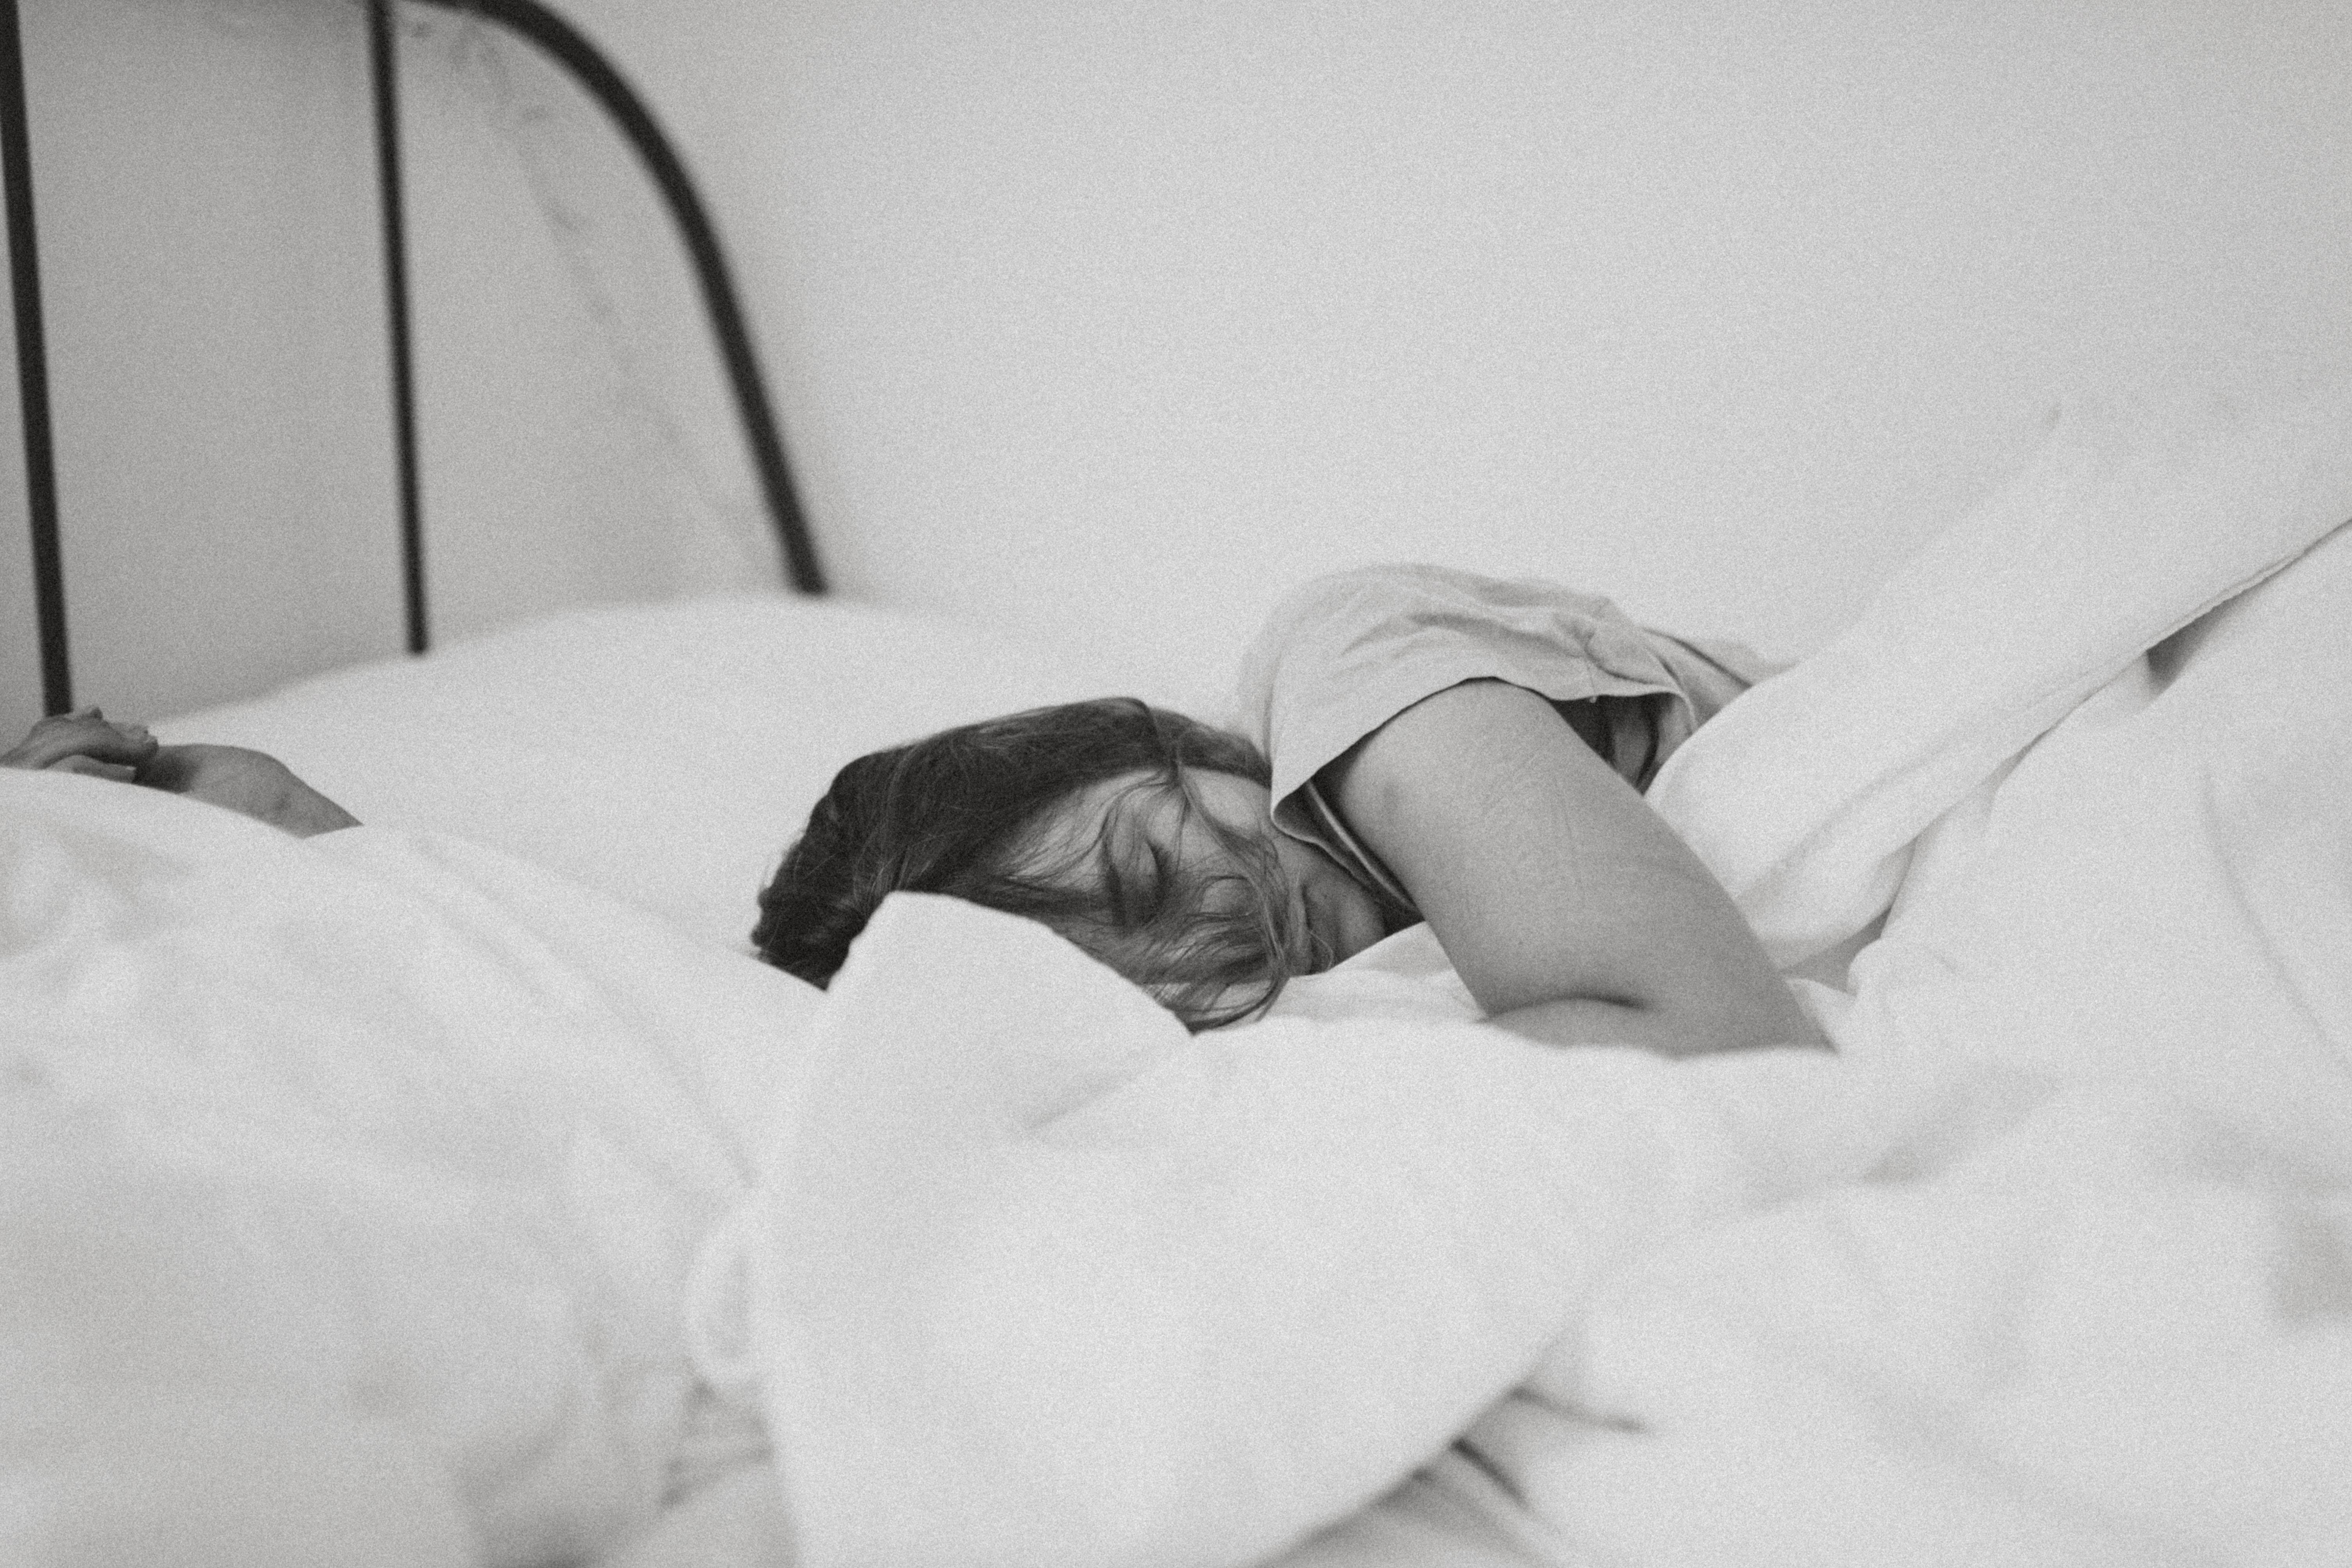 getting the right amount of sleep is important for disease prevention